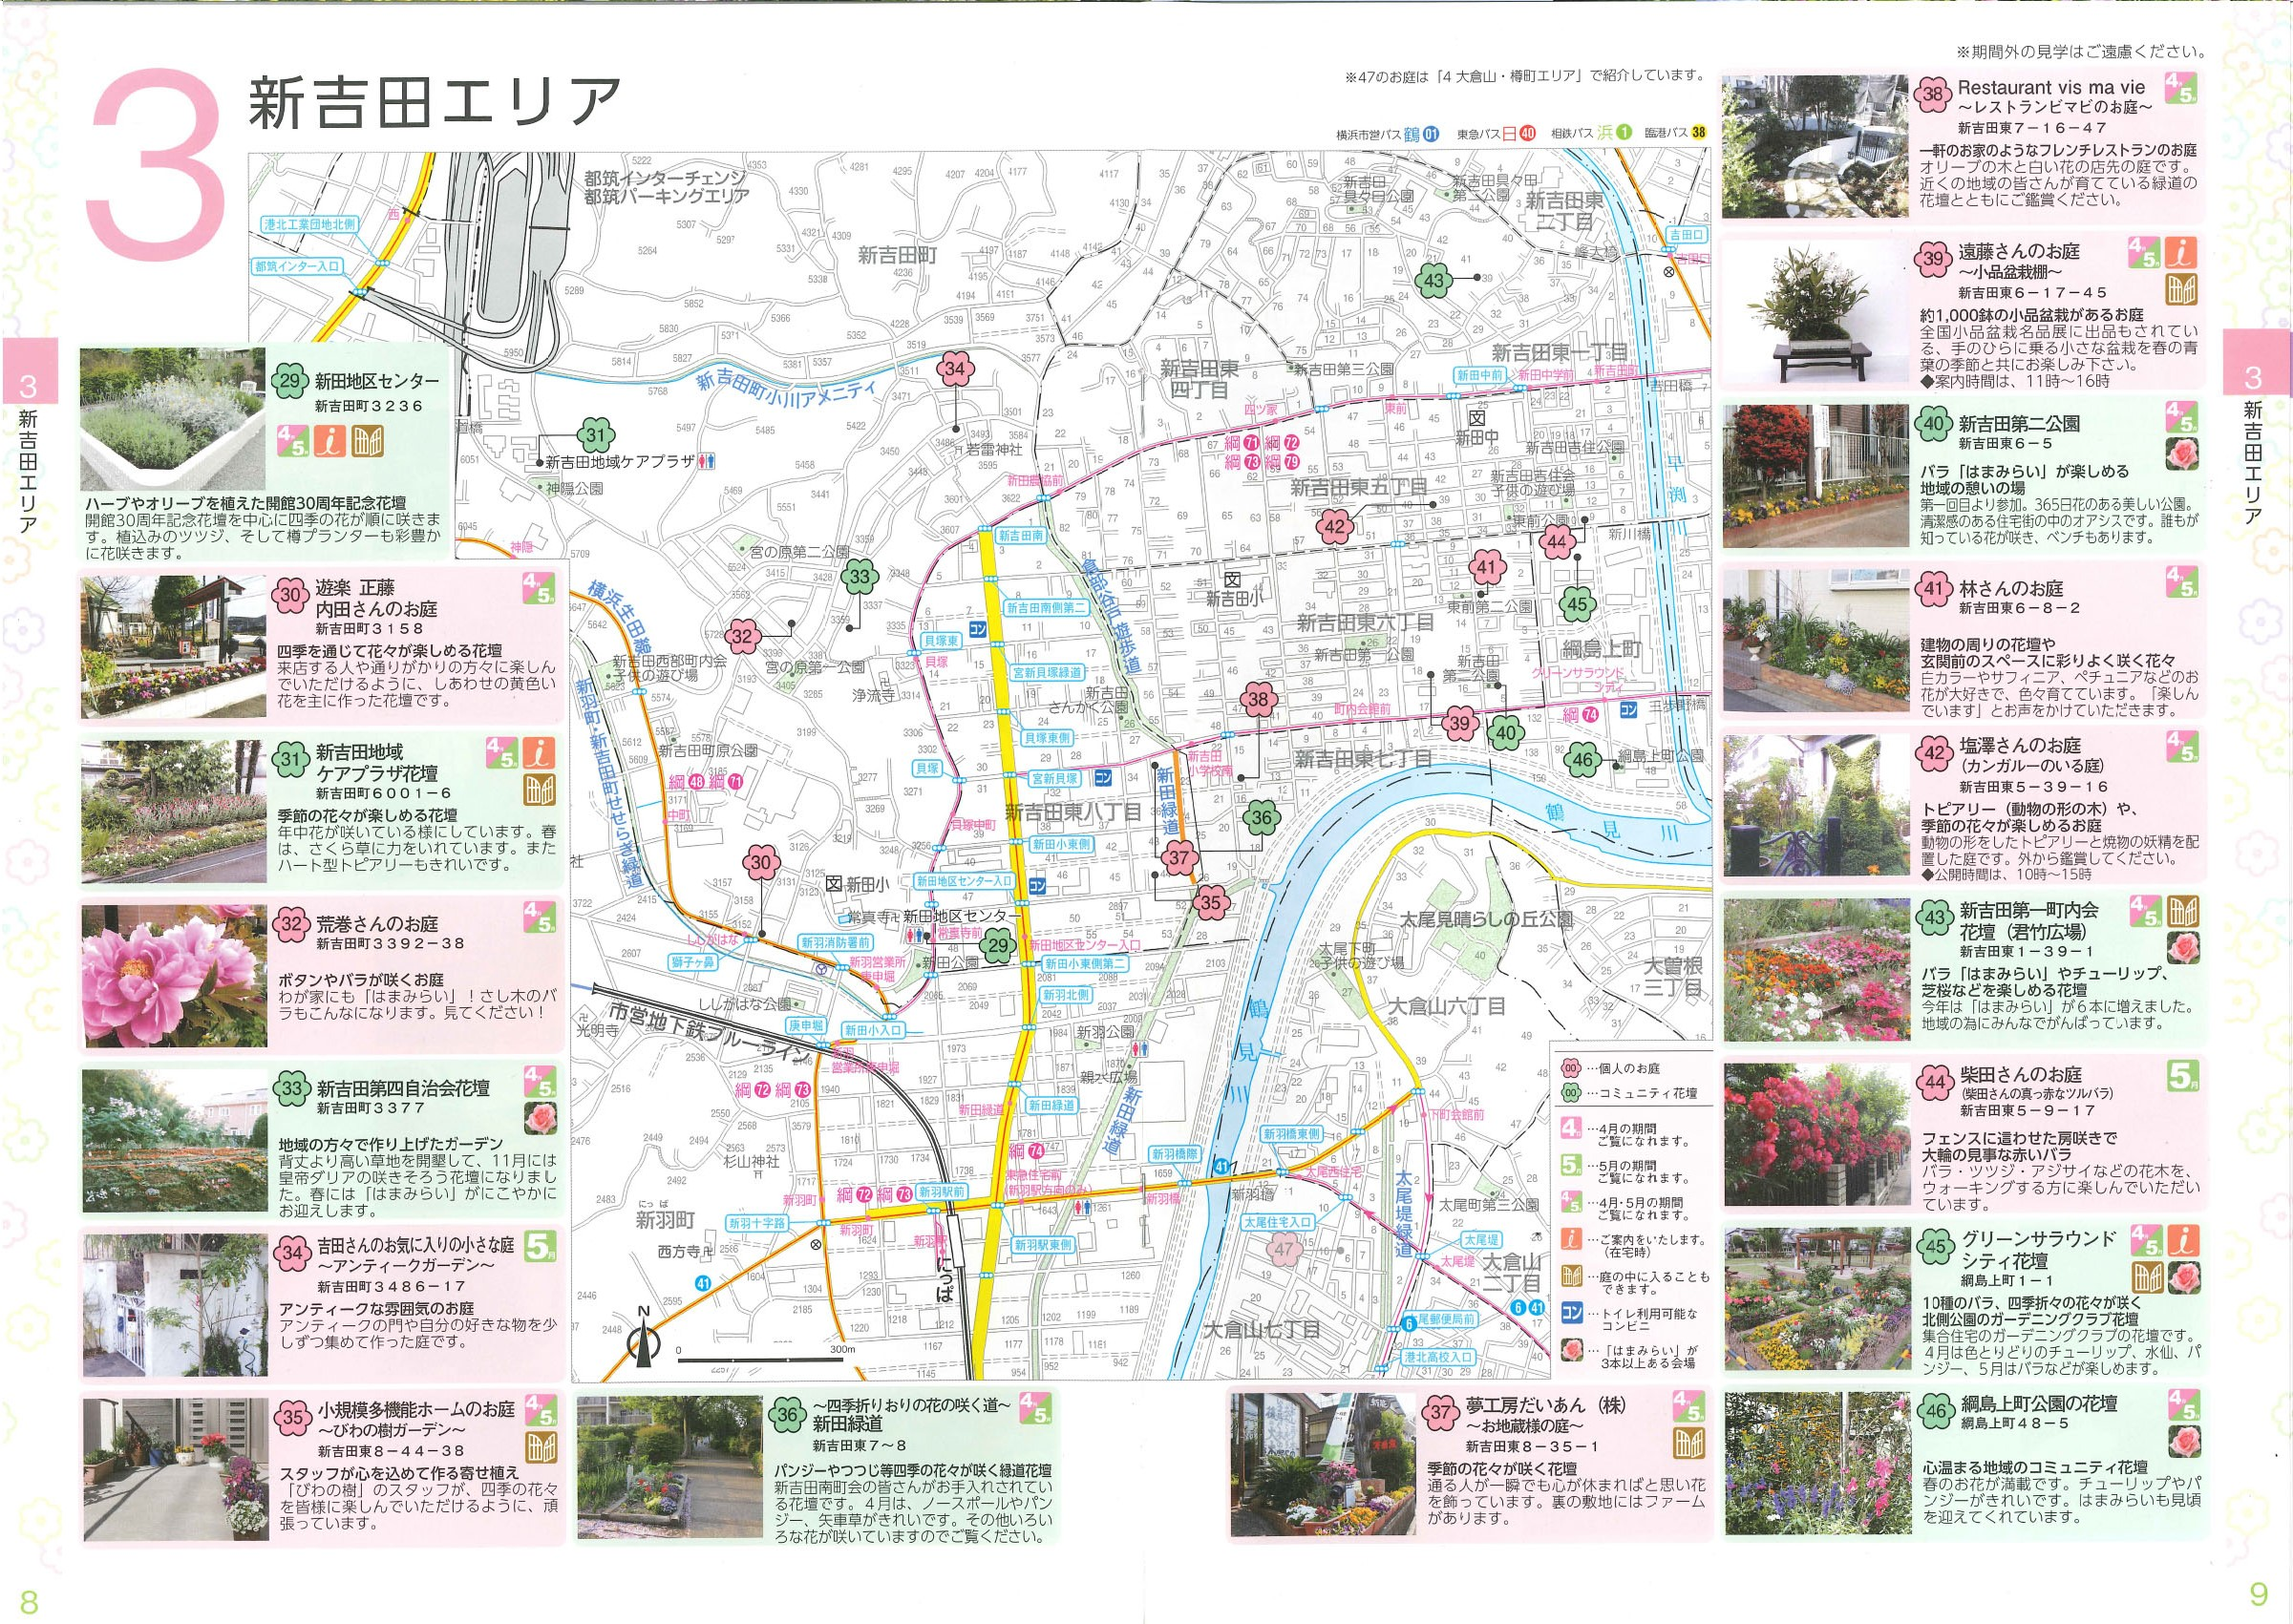 kohoku open garden map